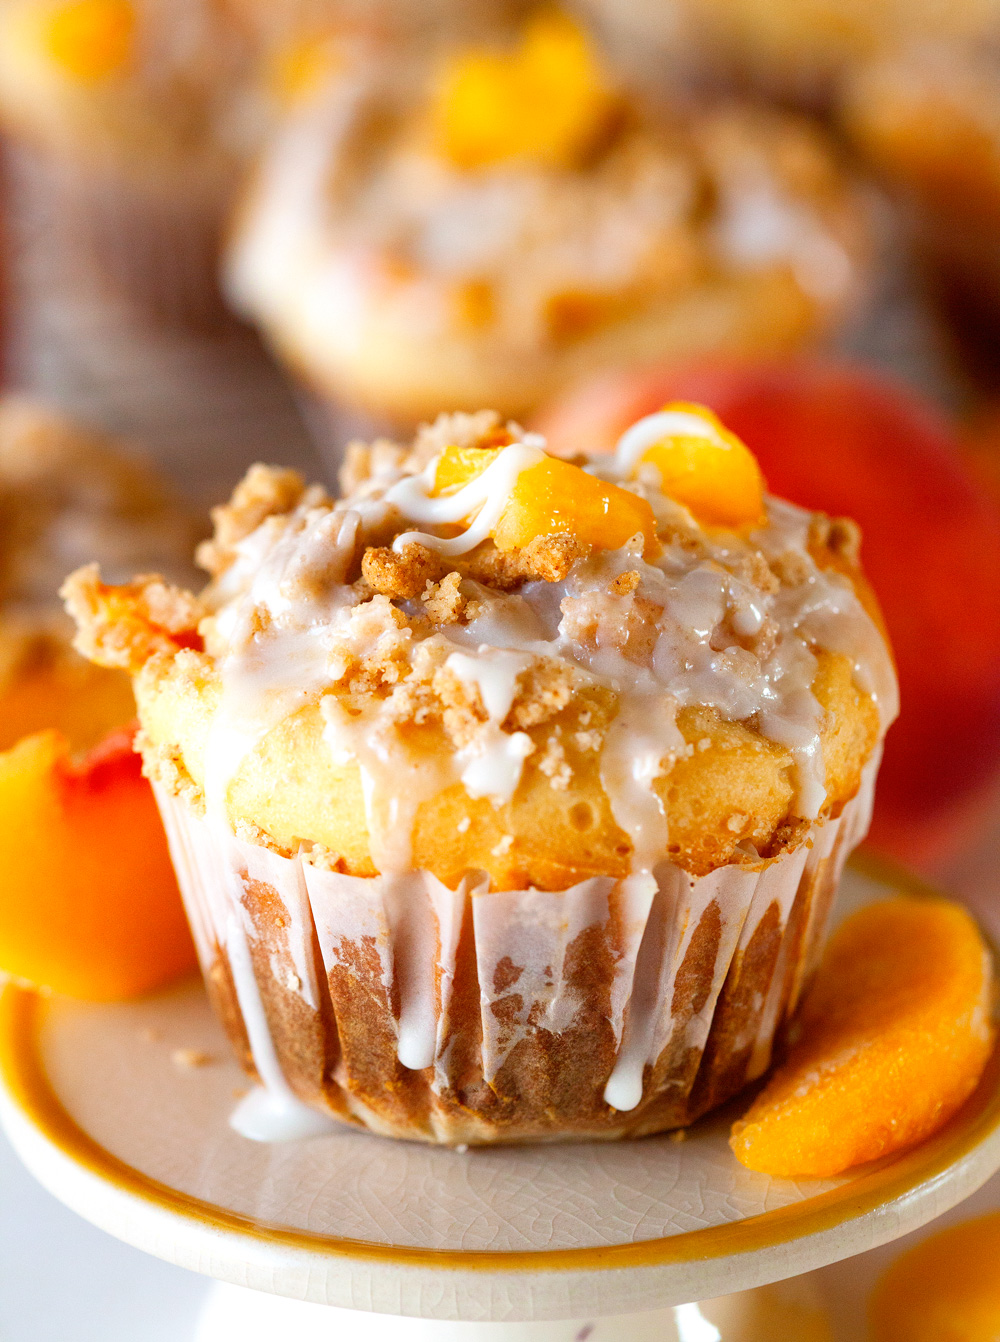 sweet-roll-peach-crumble-muffins